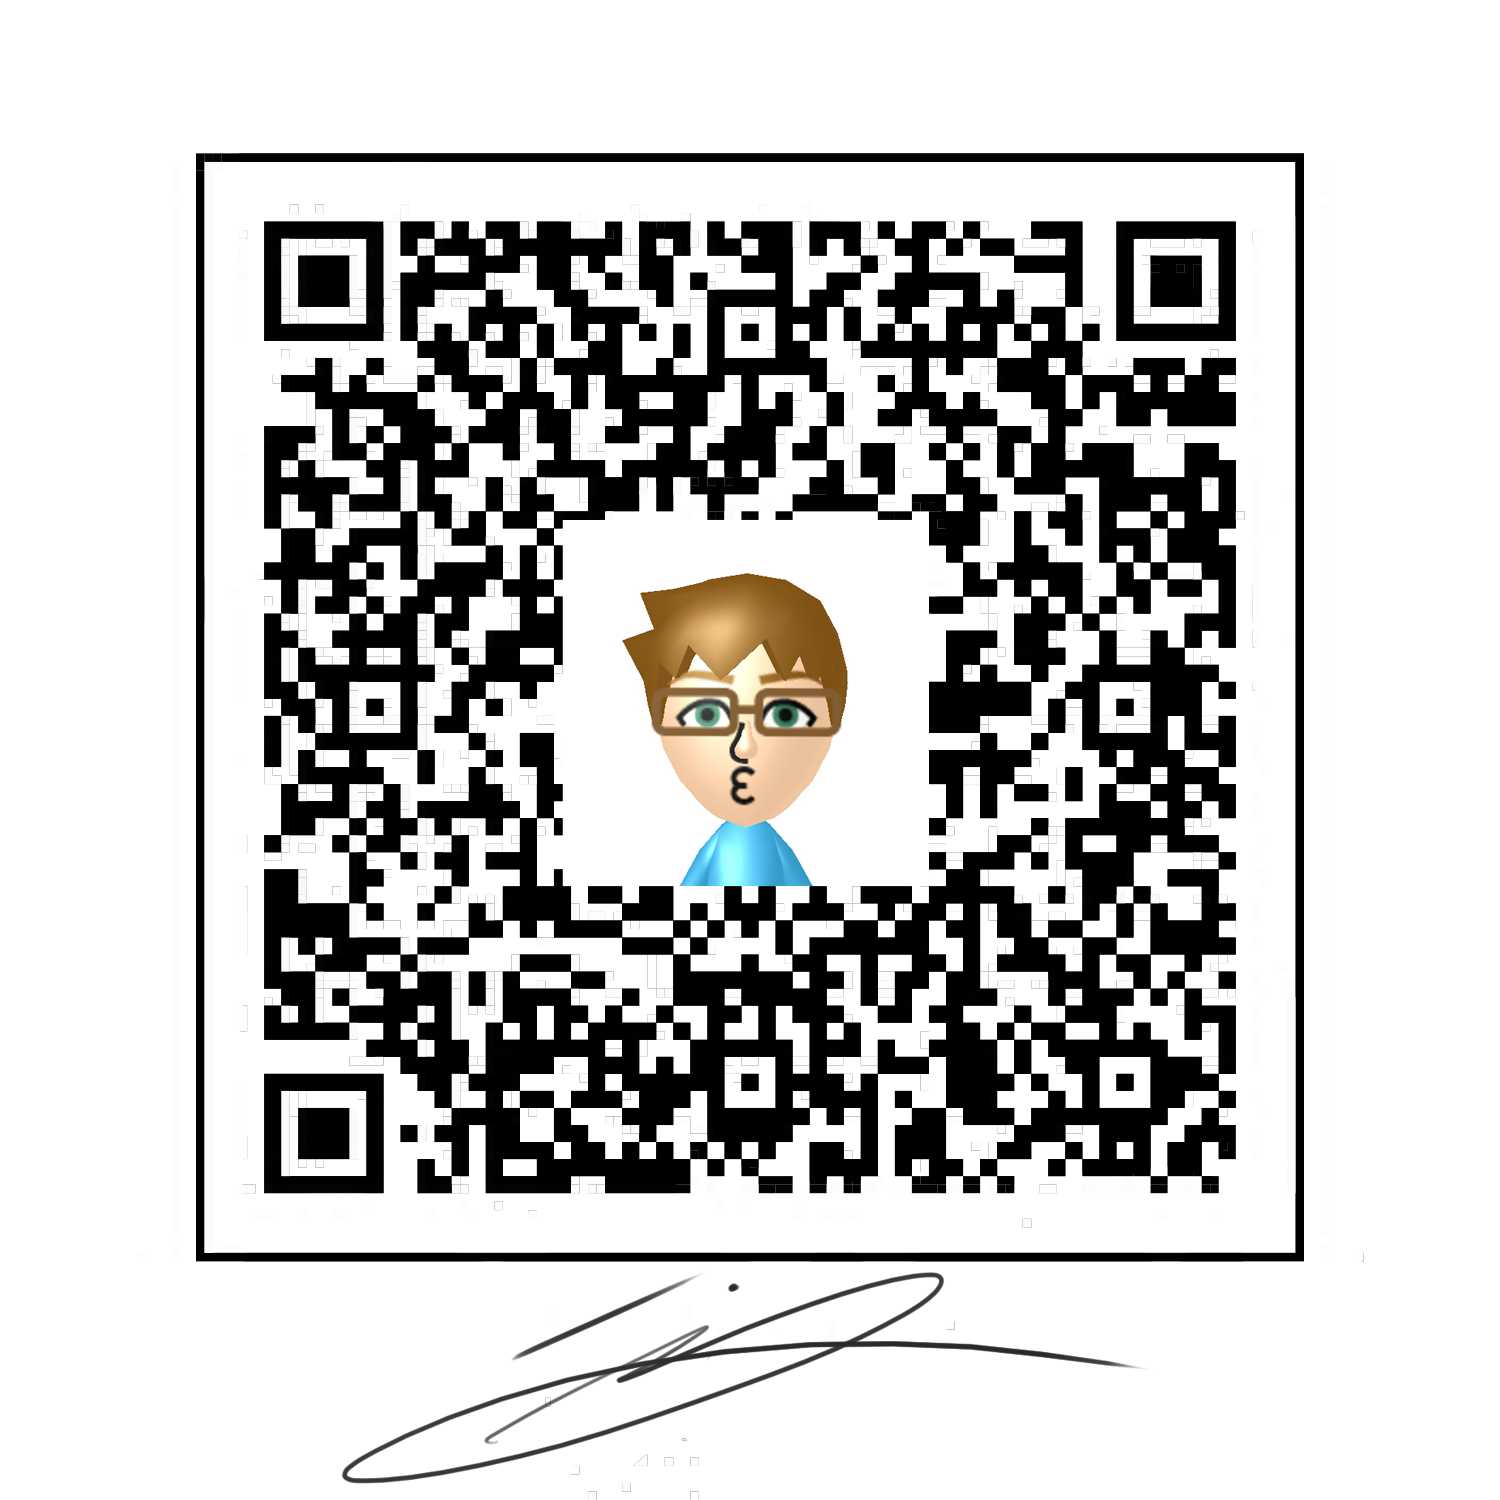 Quinns Mii Qr Code By Sterlingquinn On Deviantart